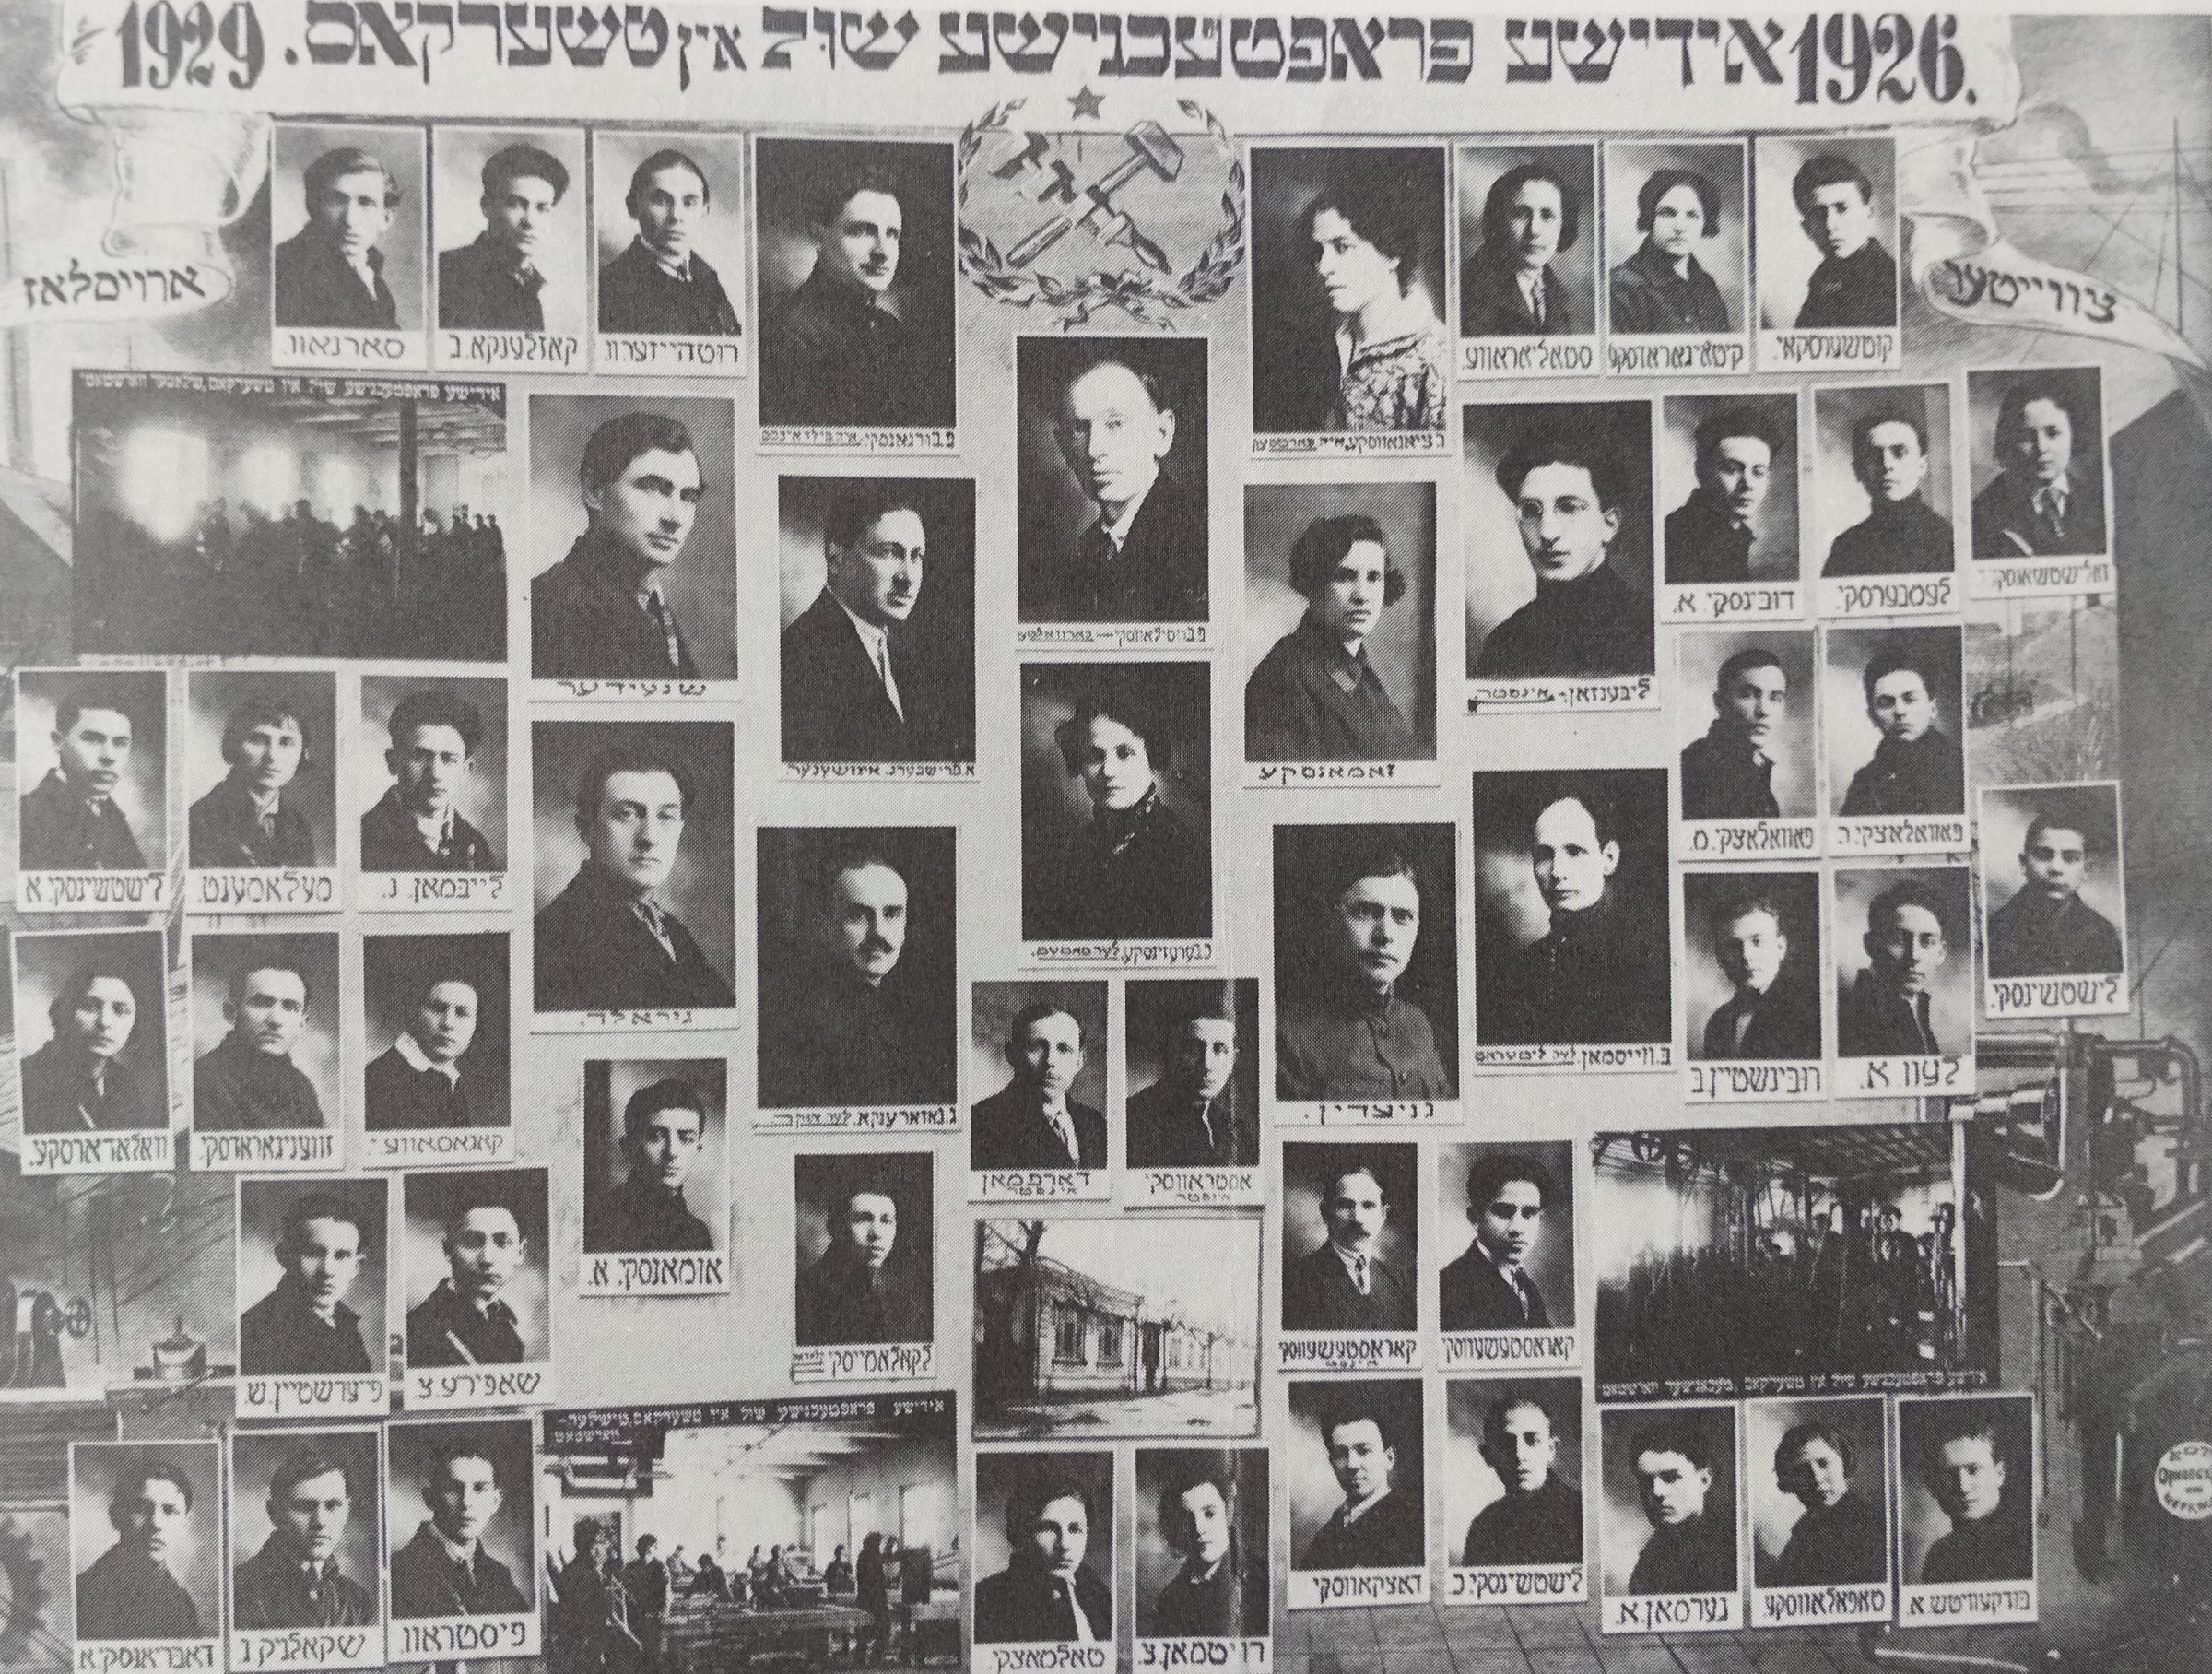 "The second graduating class of the Yiddish Professional-Technical Schol in Cherkassy. The only non-Jew on the staff is the instructor in the Ukrainian. Photo was published in the book ""A Century of Ambivalence: The Jews of Russia and the Soviet Union, 1881 to the Present"" by Zvi Gitelman, 1988"